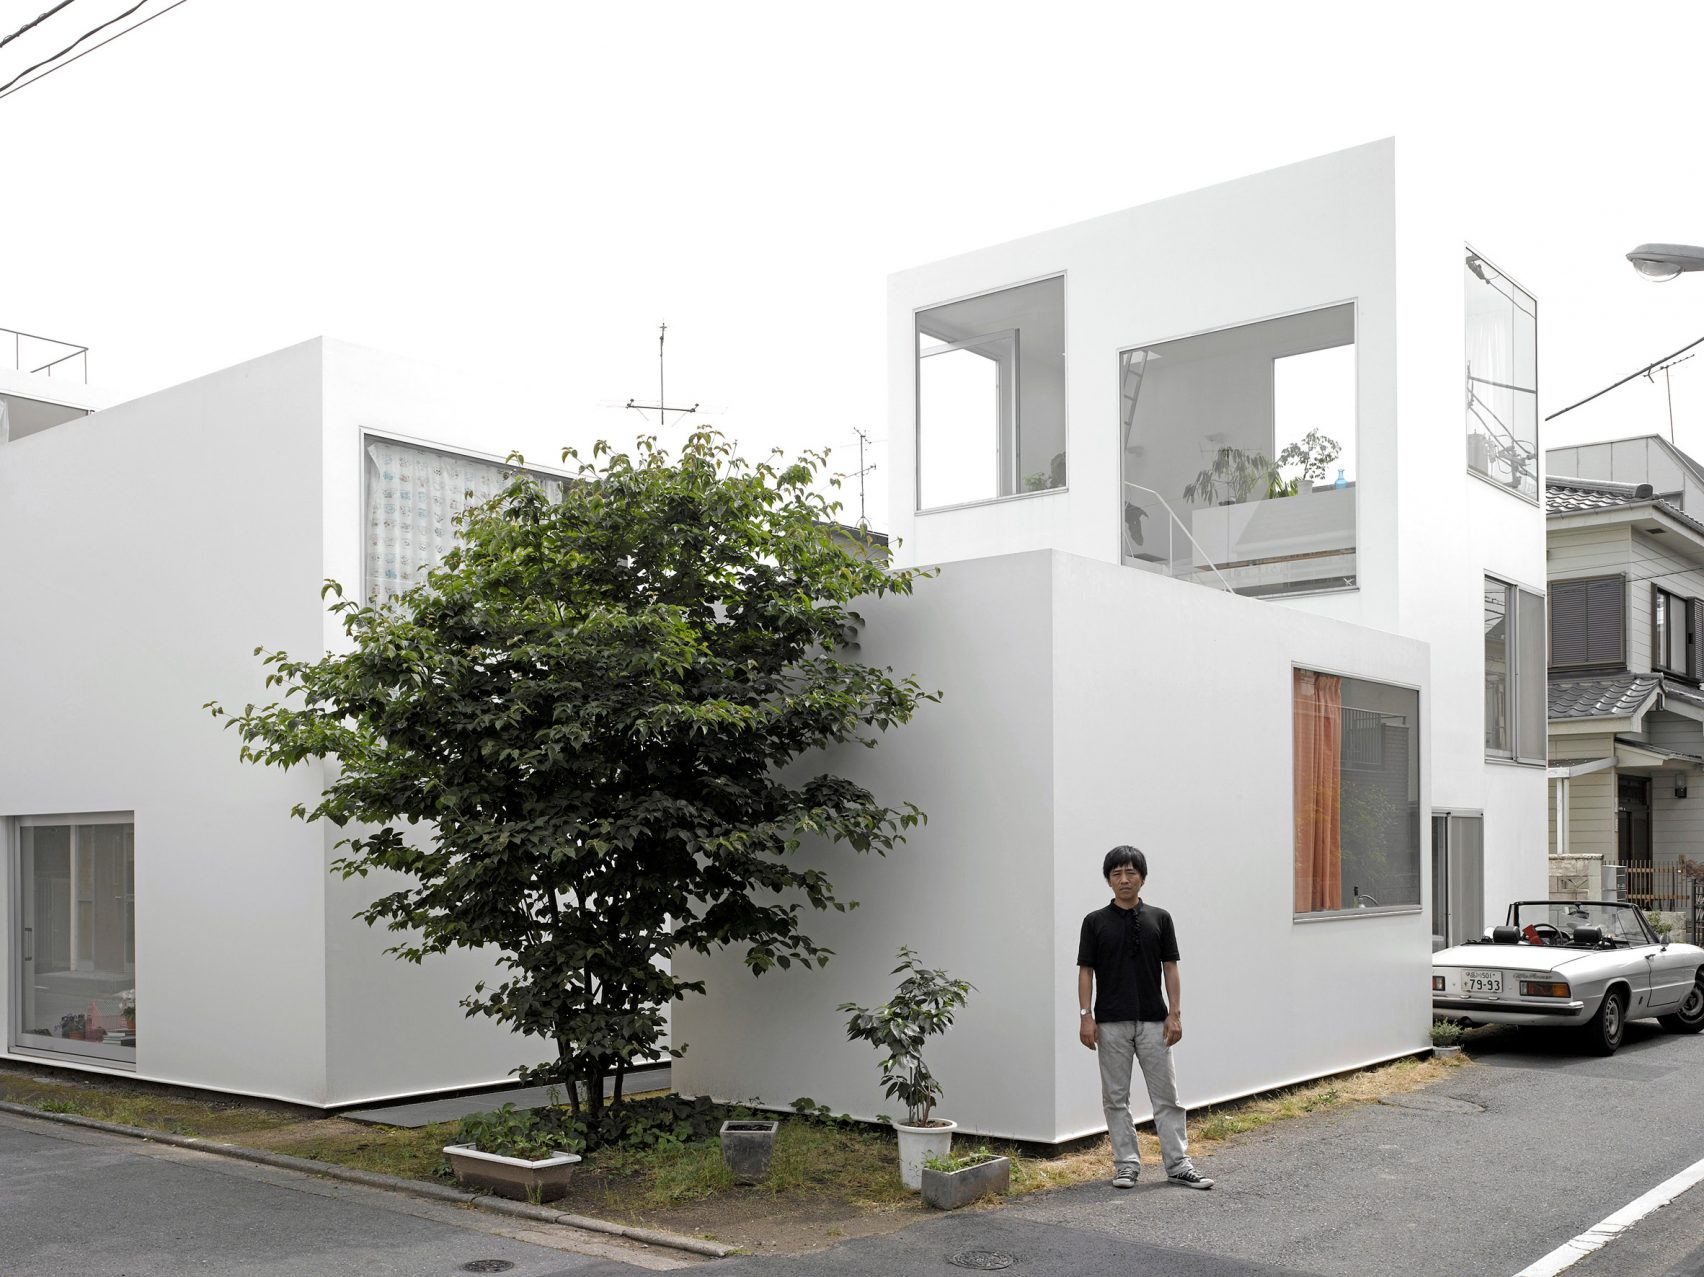 moriyama-house-photos-edmund-sumner-architecture-photography-residential-japan_dezeen_2364_col_0-1704x1277